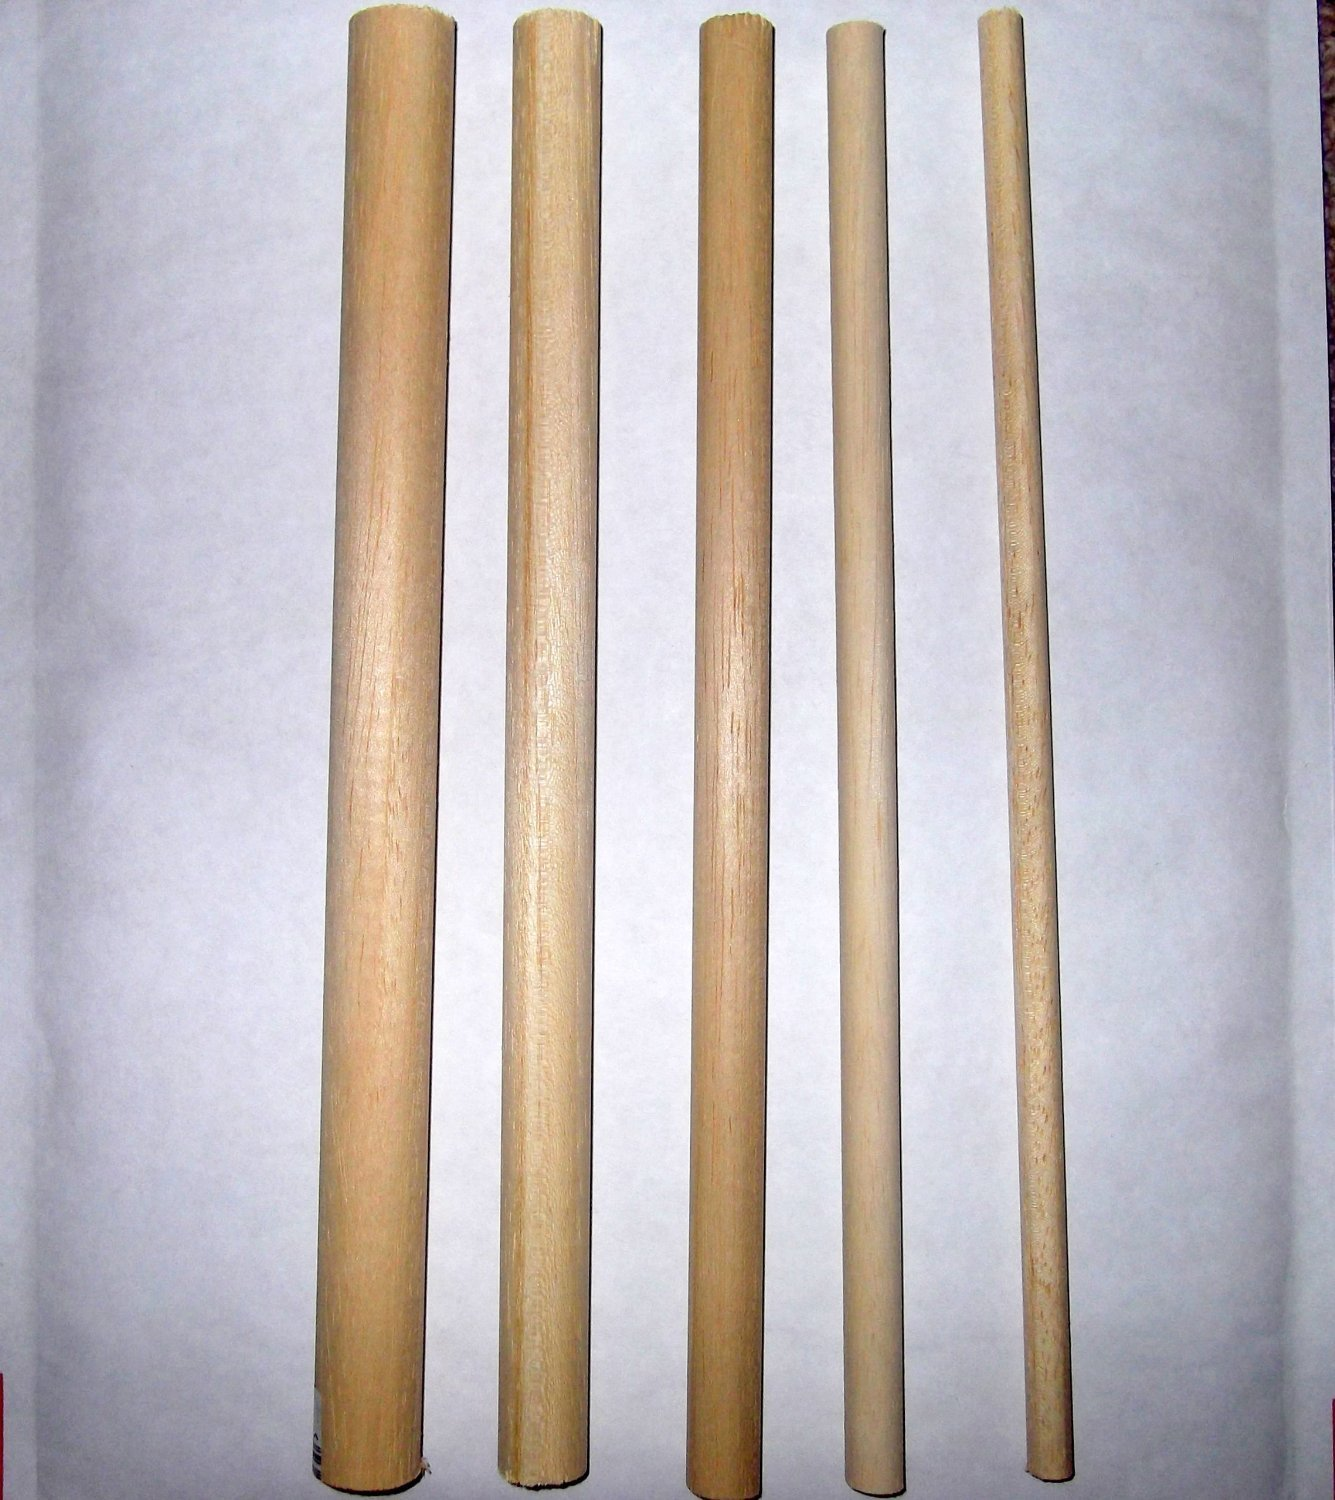 Craftmill Pack Of 3 Wooden Dowels 30Cm Long - Choose Your Width - Ideal For Craft, Hobbies, Diy, Sweet Trees, Kits (30Cm X 18Mm)